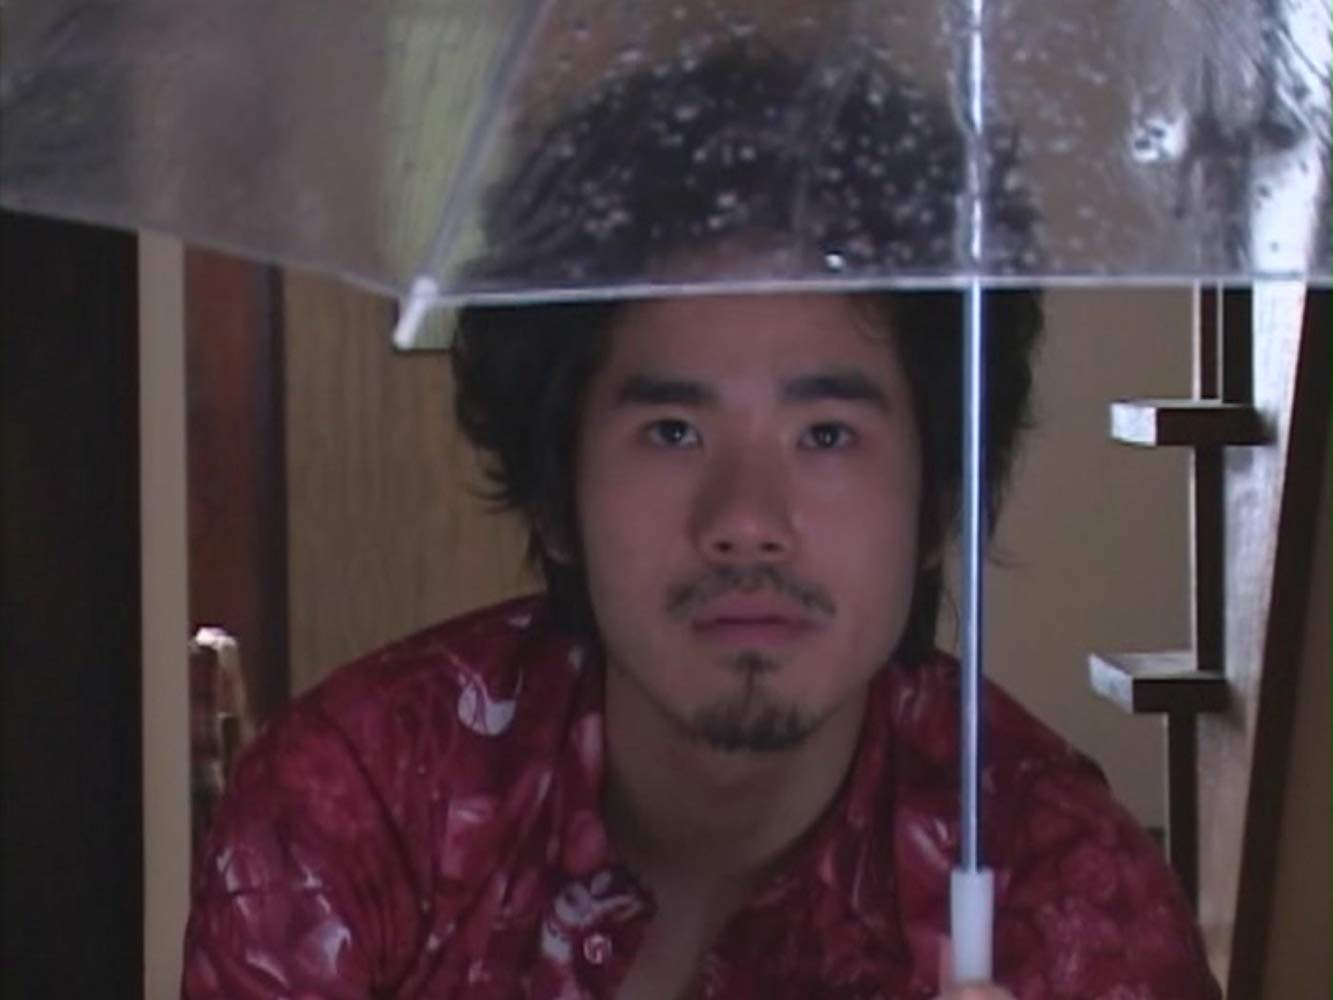 Kazushi Watanabe as The Visitor in The Visitor Q